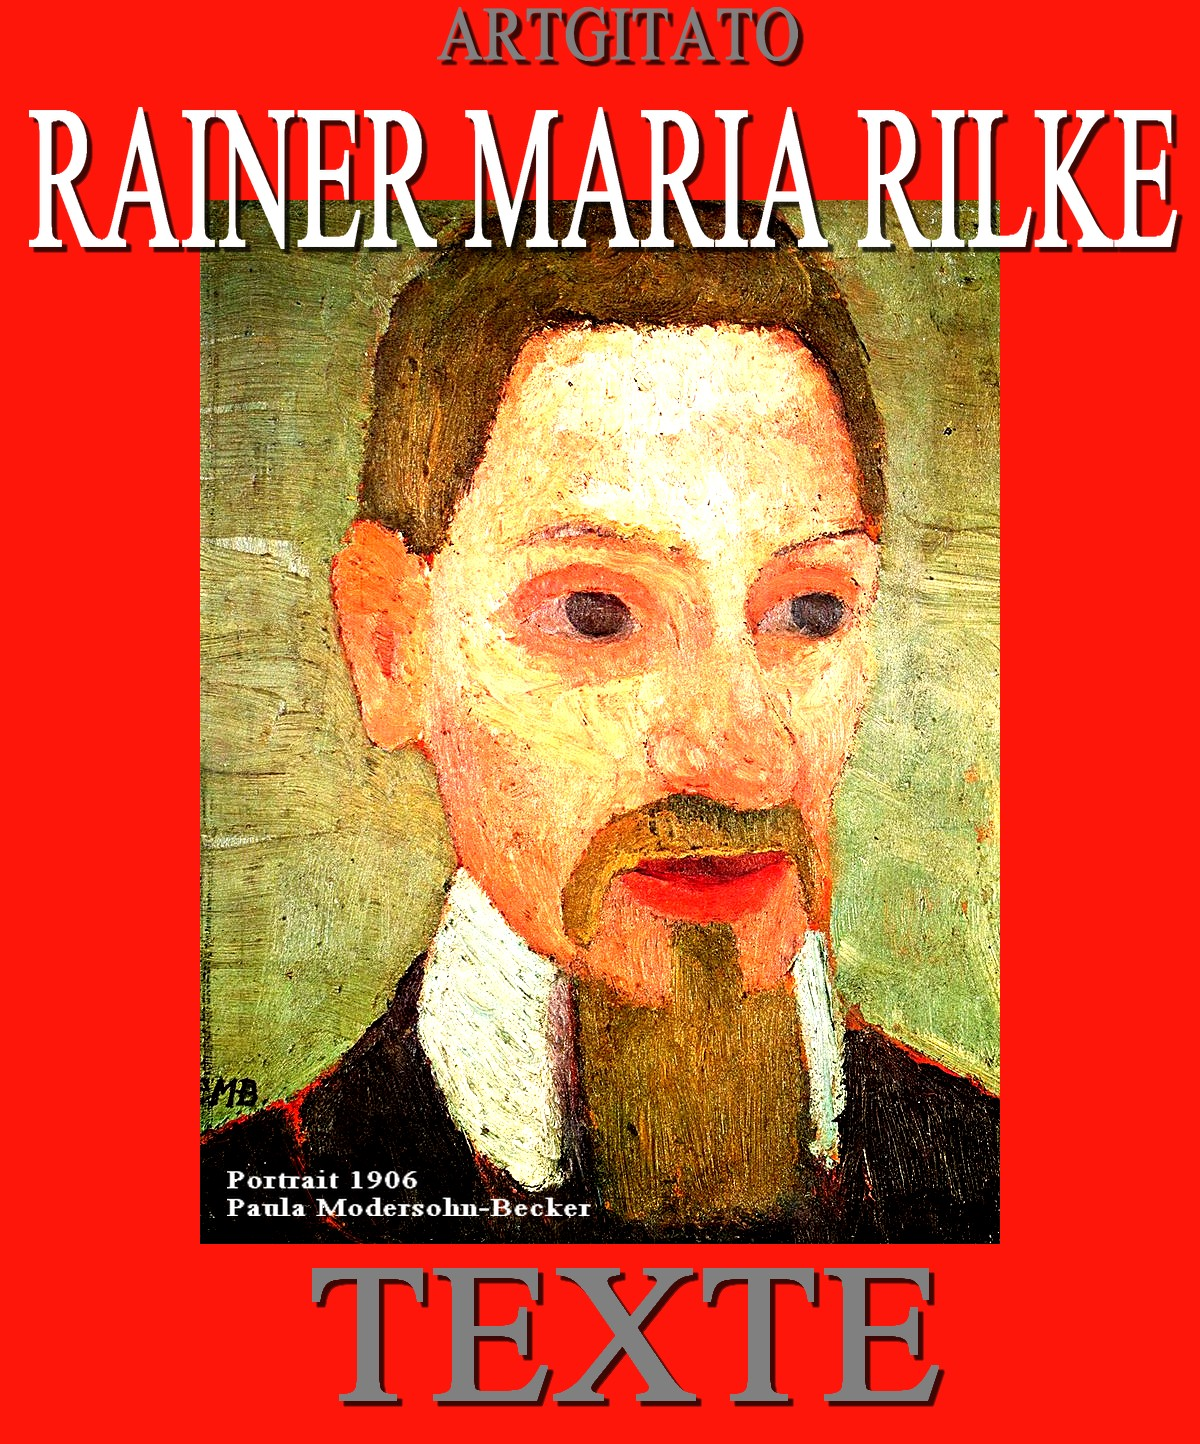 rainer maria rilke Widely recognized as one of the most lyrically intense german-language poets, rainer maria rilke was unique in his efforts to expand the realm of poetry through new.